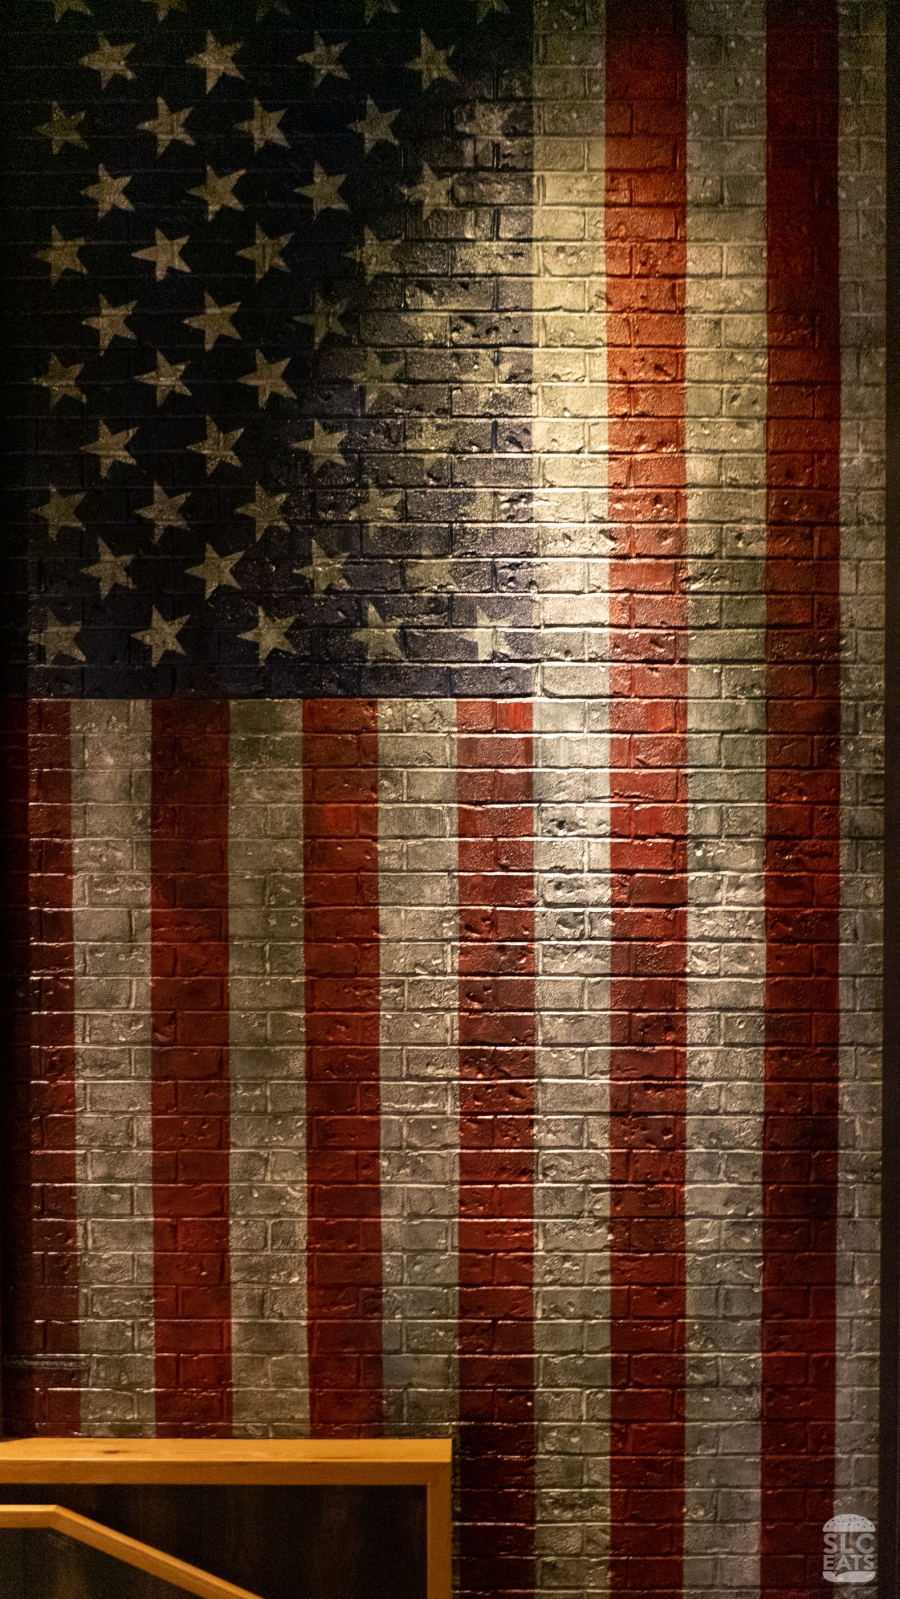 American flag painted on restaurant wall